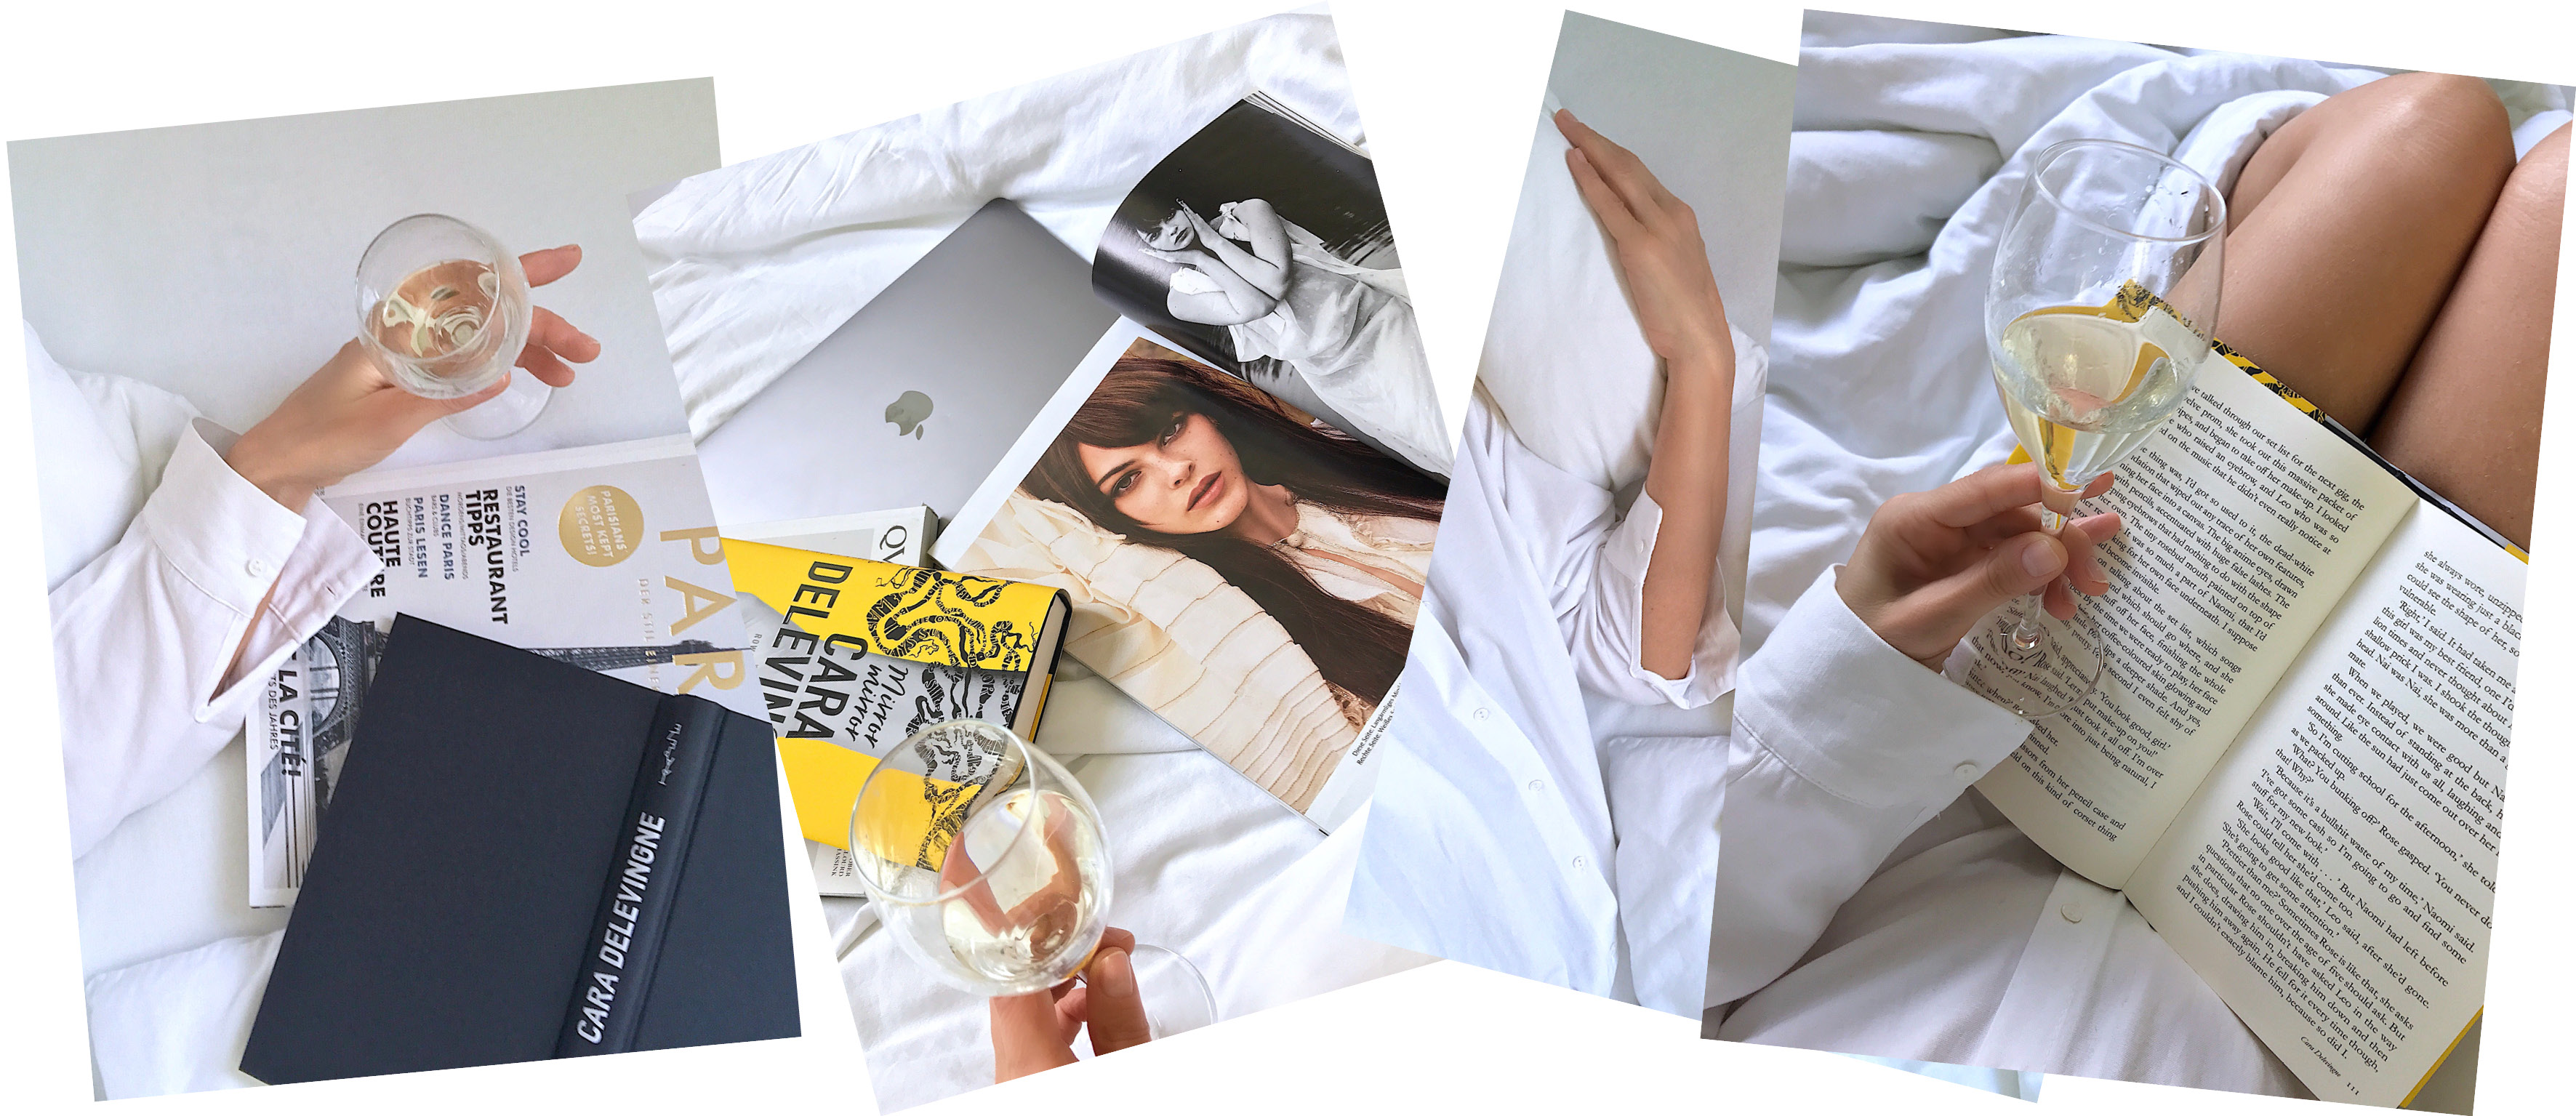 breakfast in bed collage moods glass of champagne holding in hand while reading a book white linen white shirt